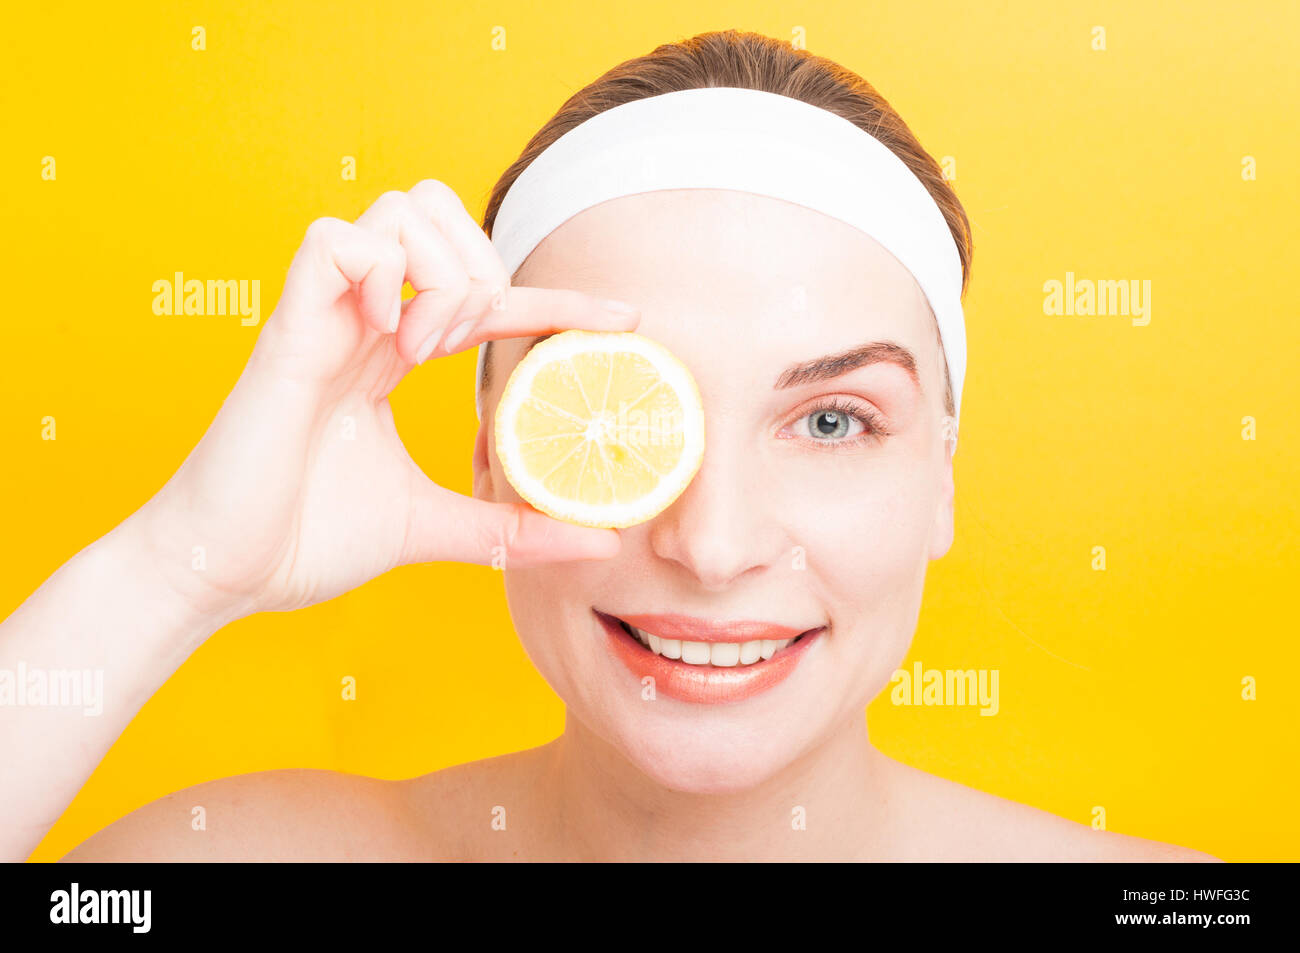 Natural facial masks concept with young female and a slice of fresh lemon on yellow background - Stock Image